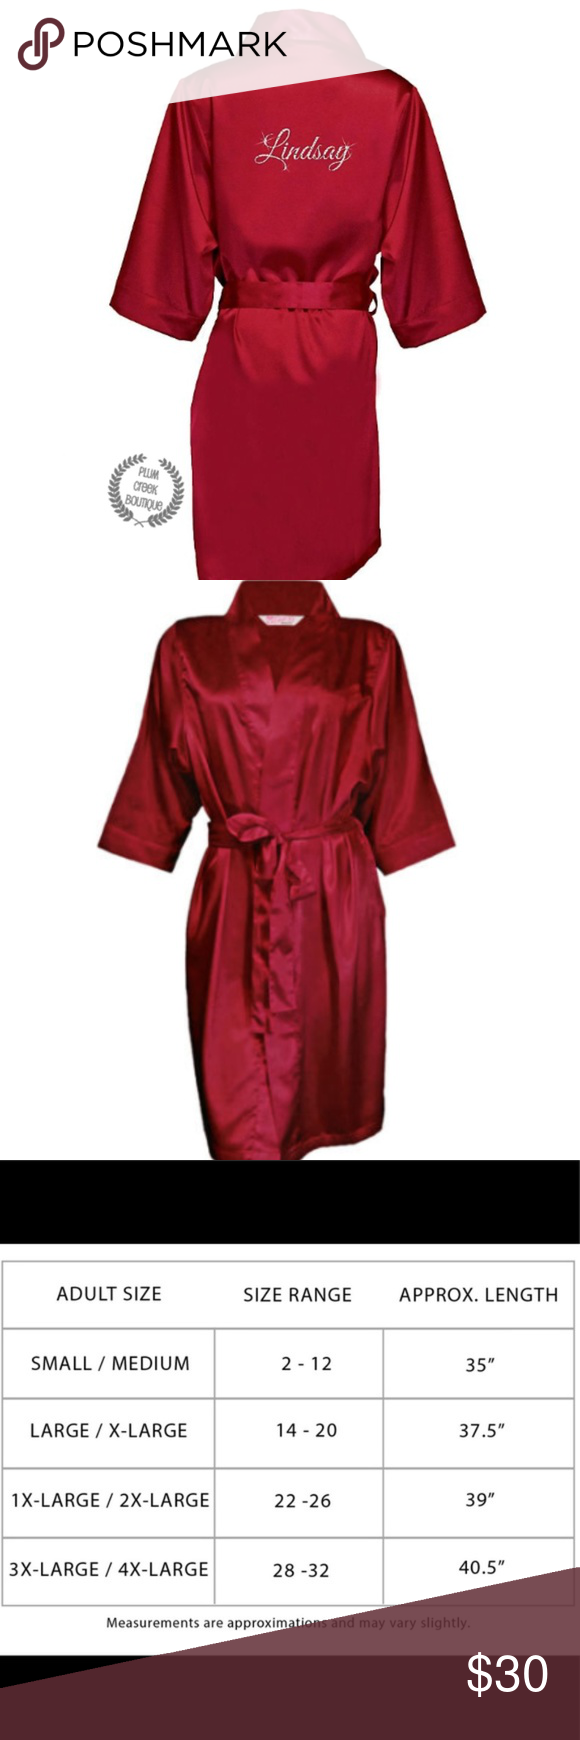 Crimson red satin robe christmas intimates new nwt boutique in